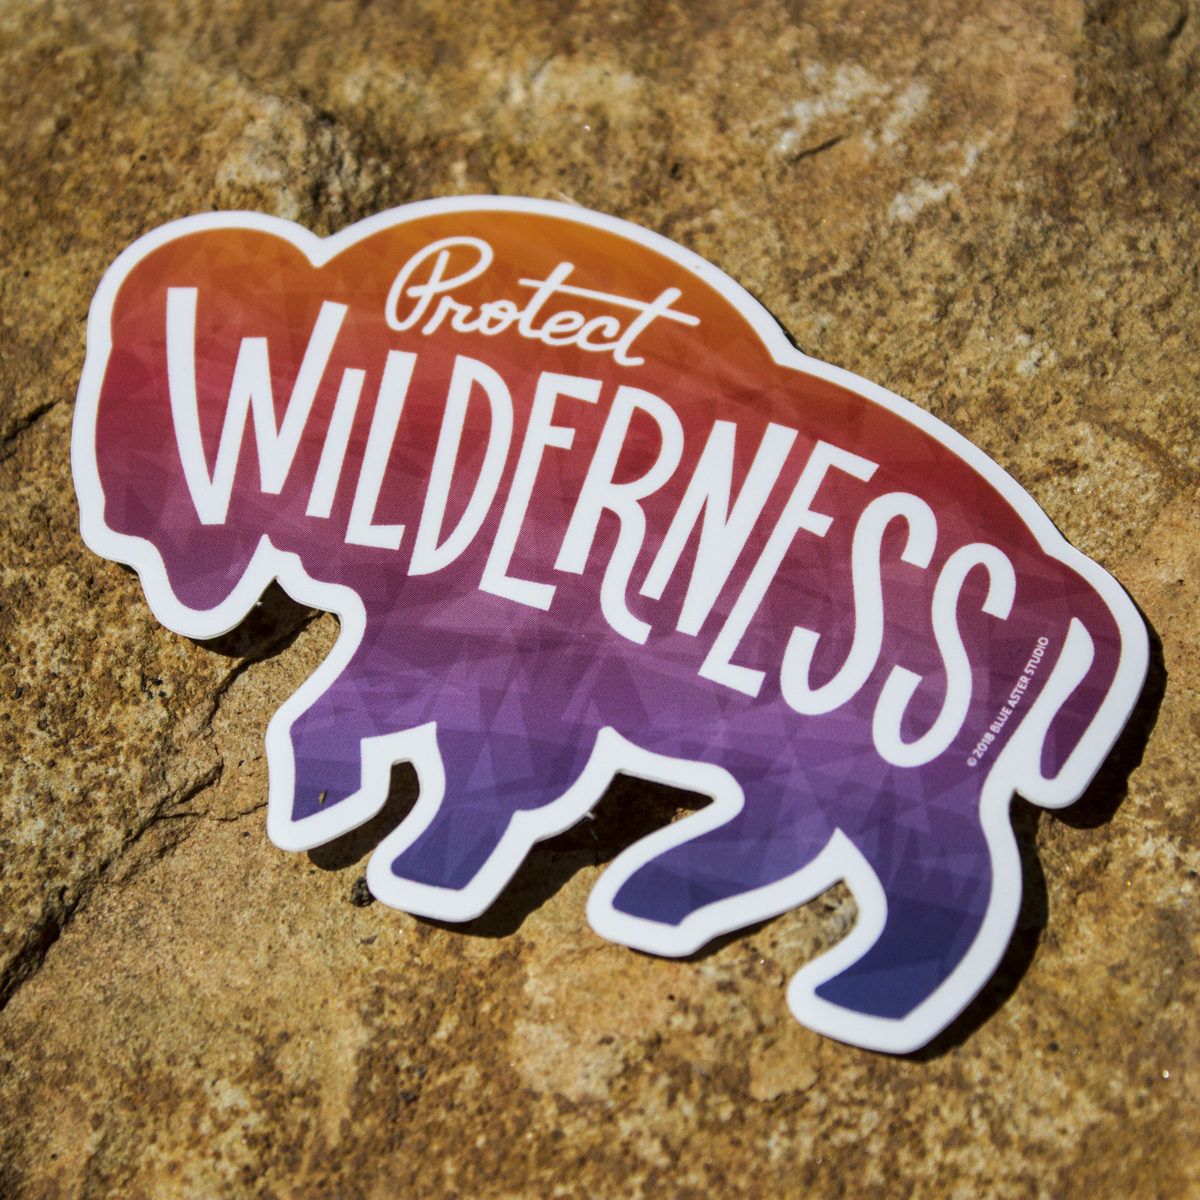 Wilderness_Bison.jpg